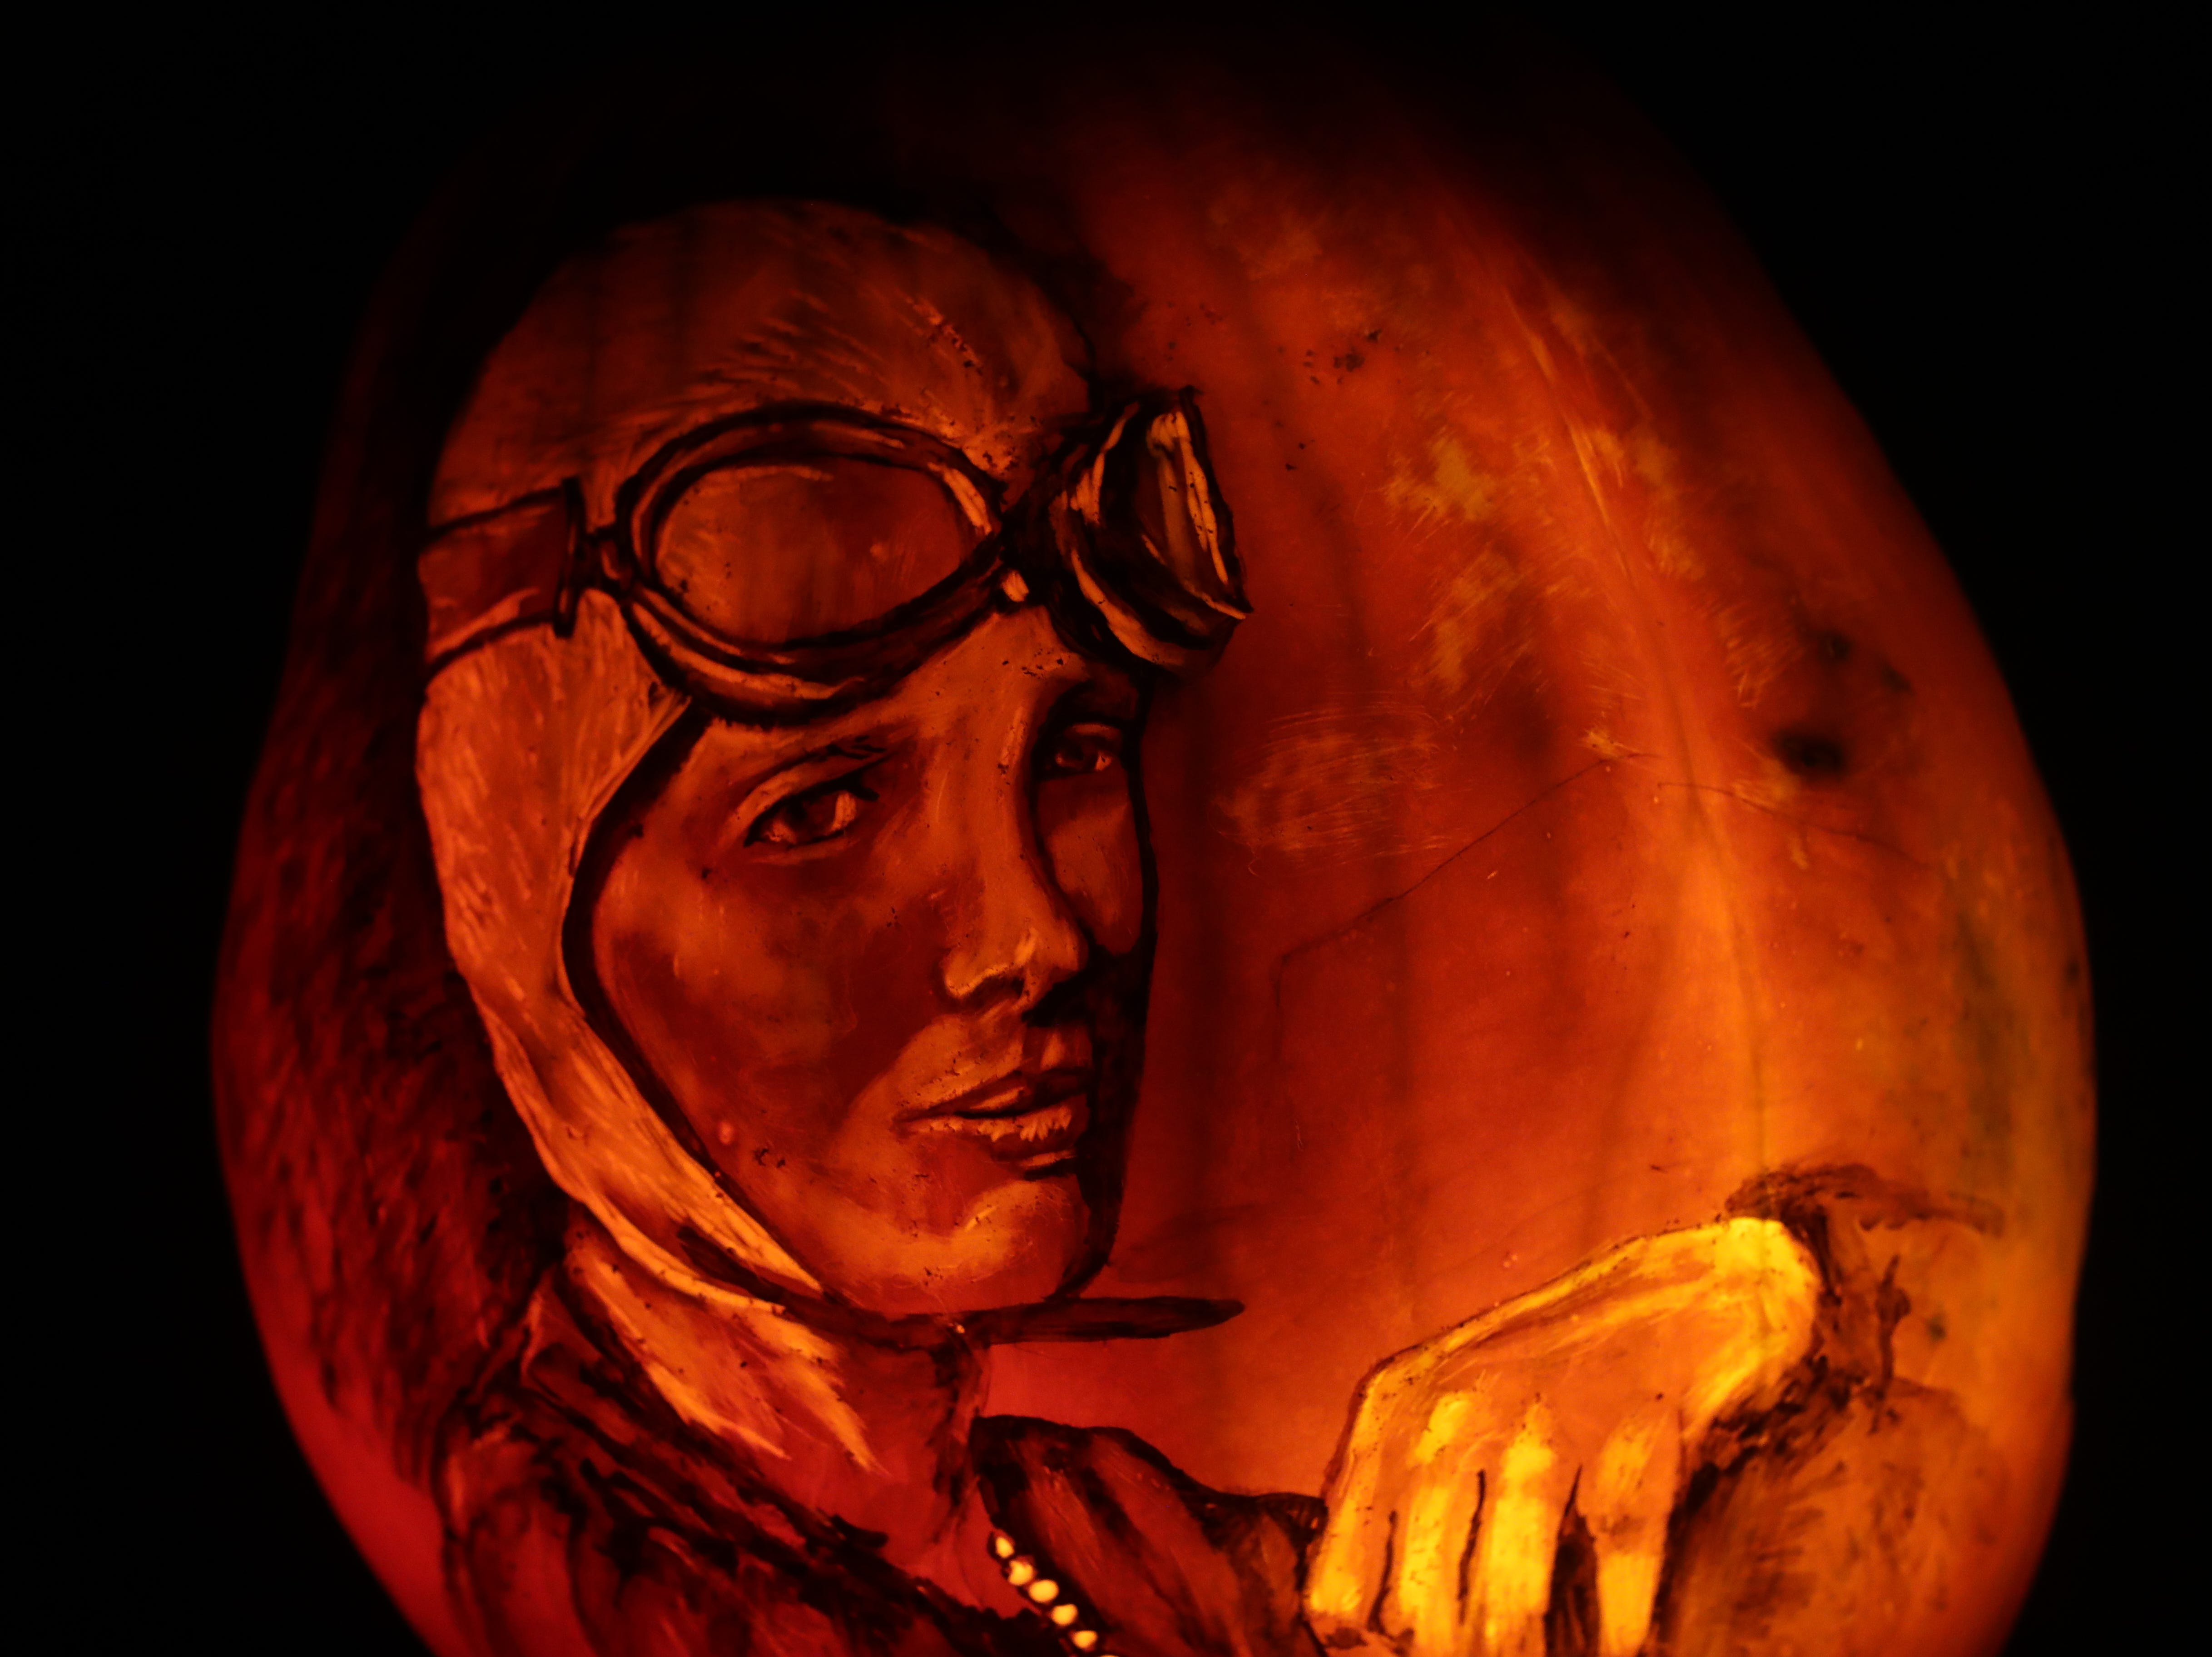 Amelia Earhart appears on a pumpkin at this year's Jack O' Lantern Spectacular. Oct. 9, 2018